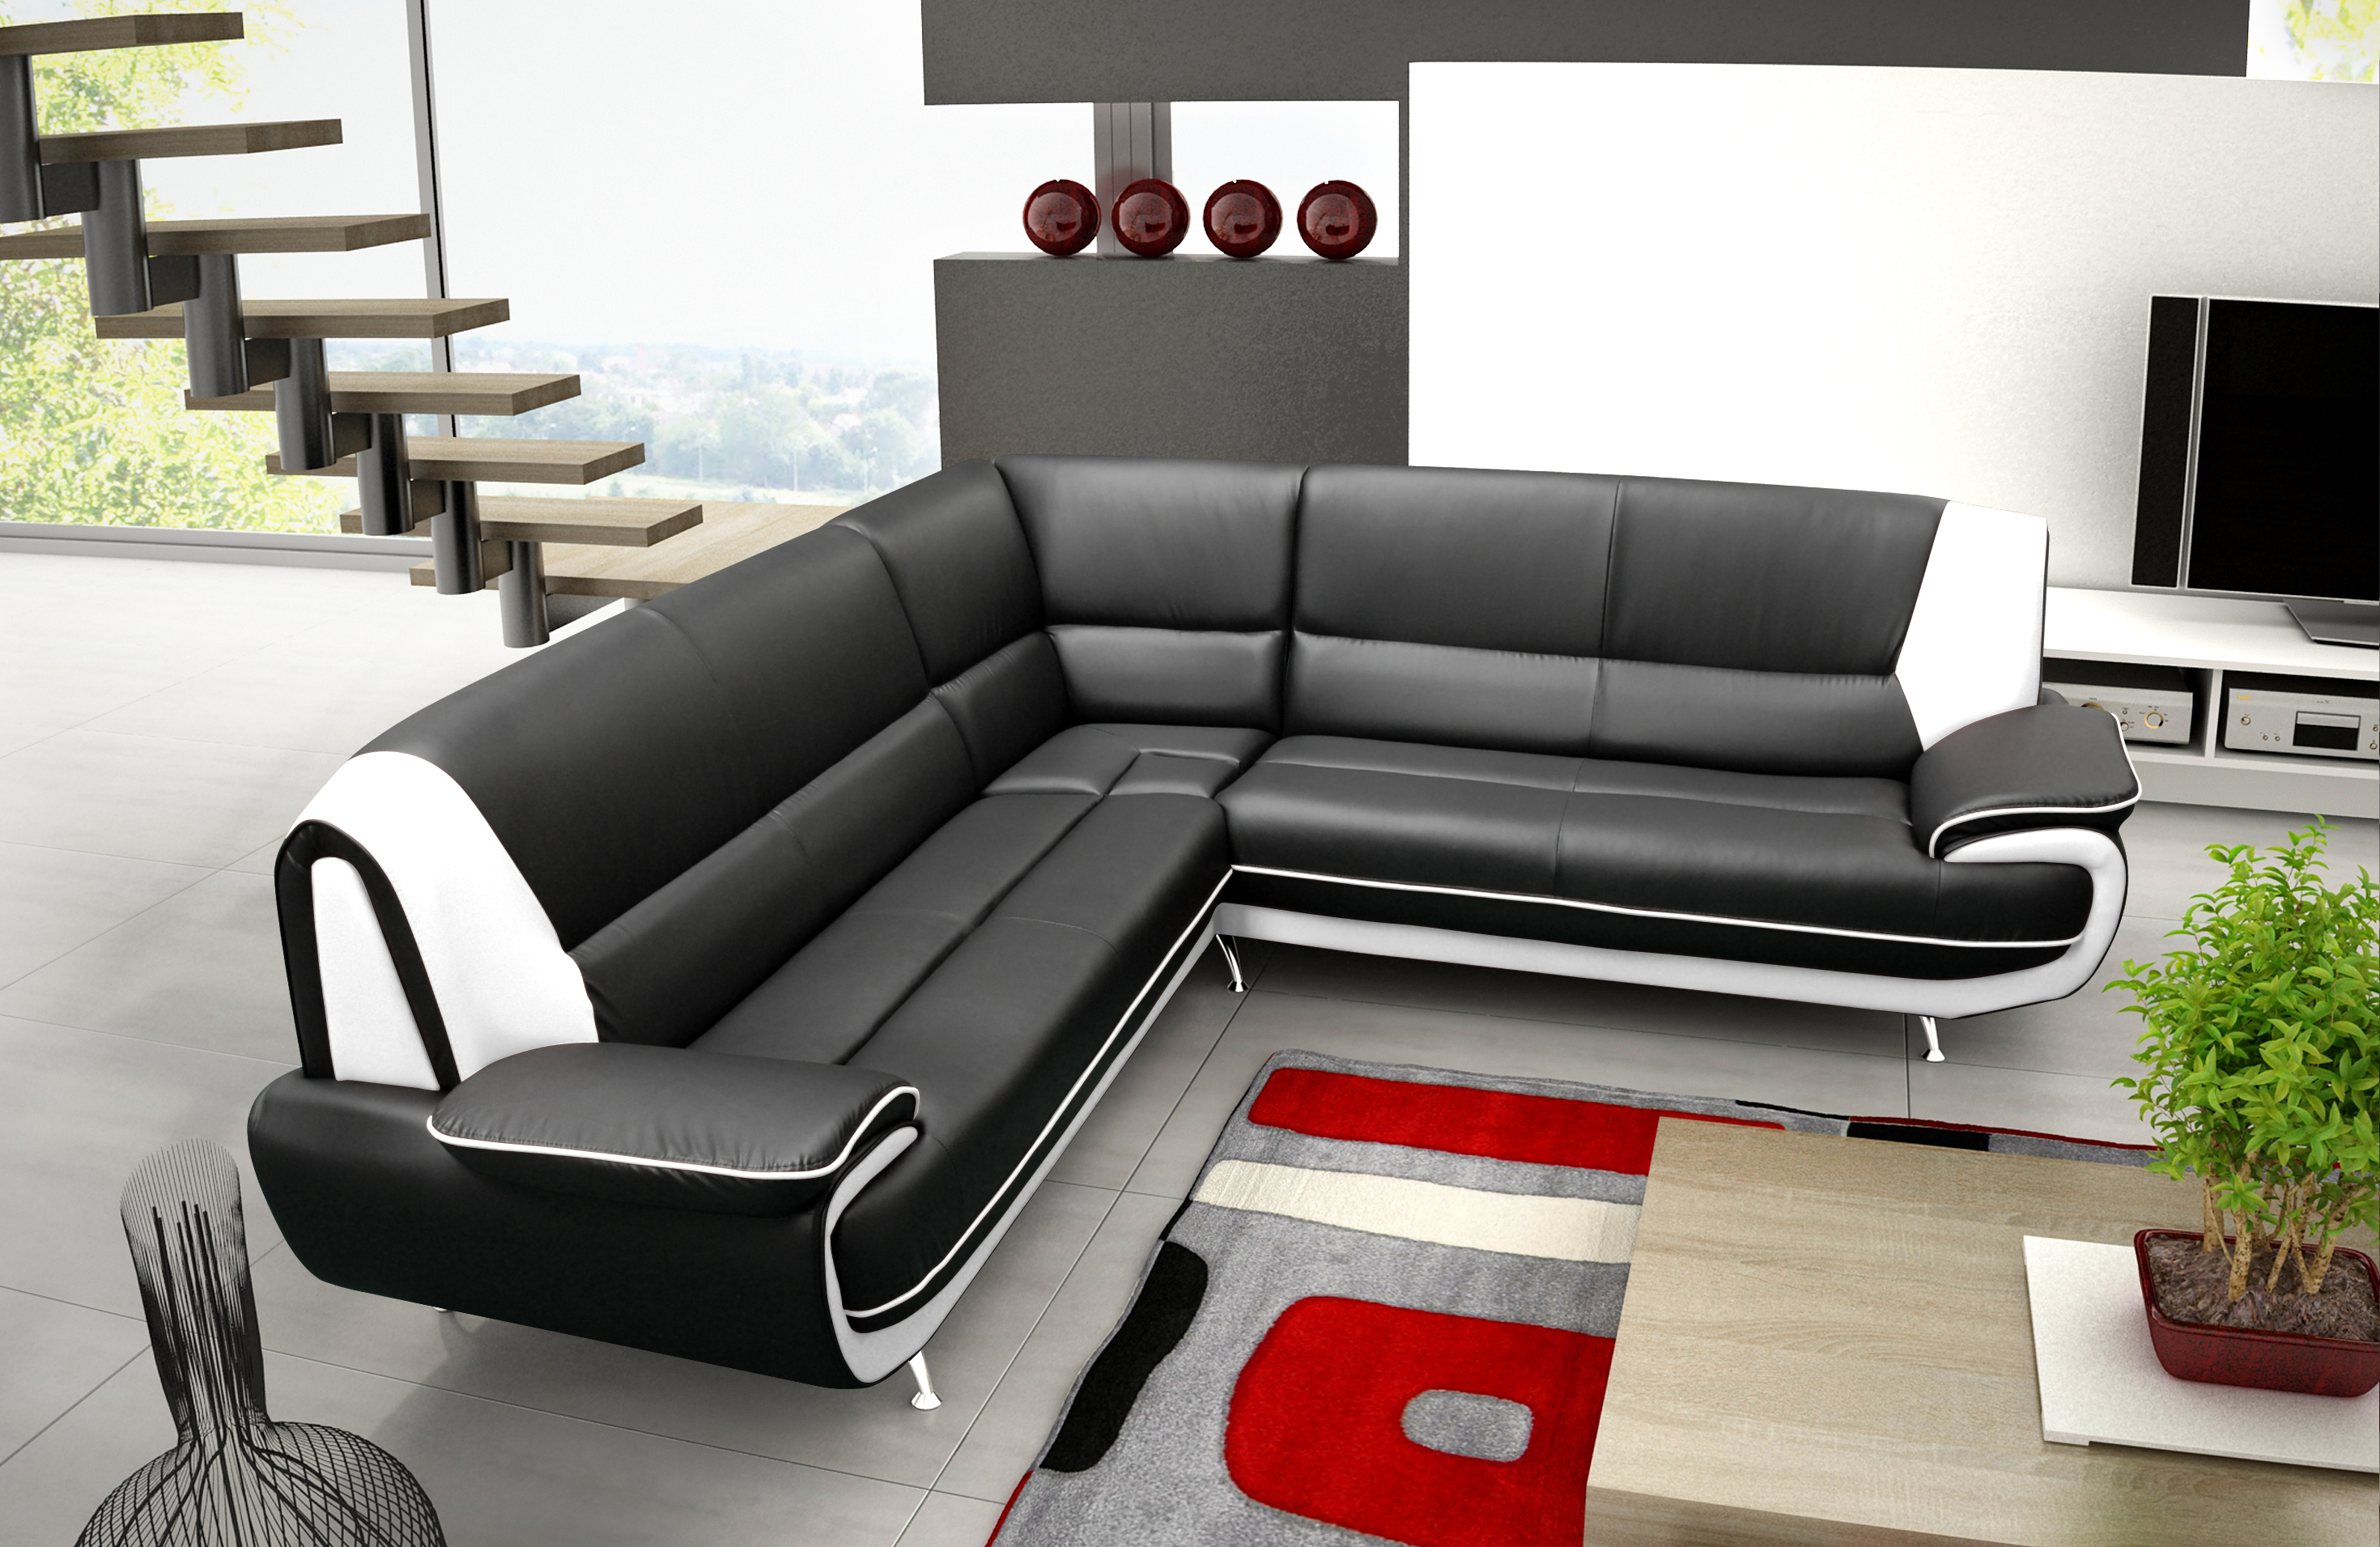 ecksofa palermo max wohnzimmer designer sofa ecke schwarz wei mit metallf en ebay. Black Bedroom Furniture Sets. Home Design Ideas